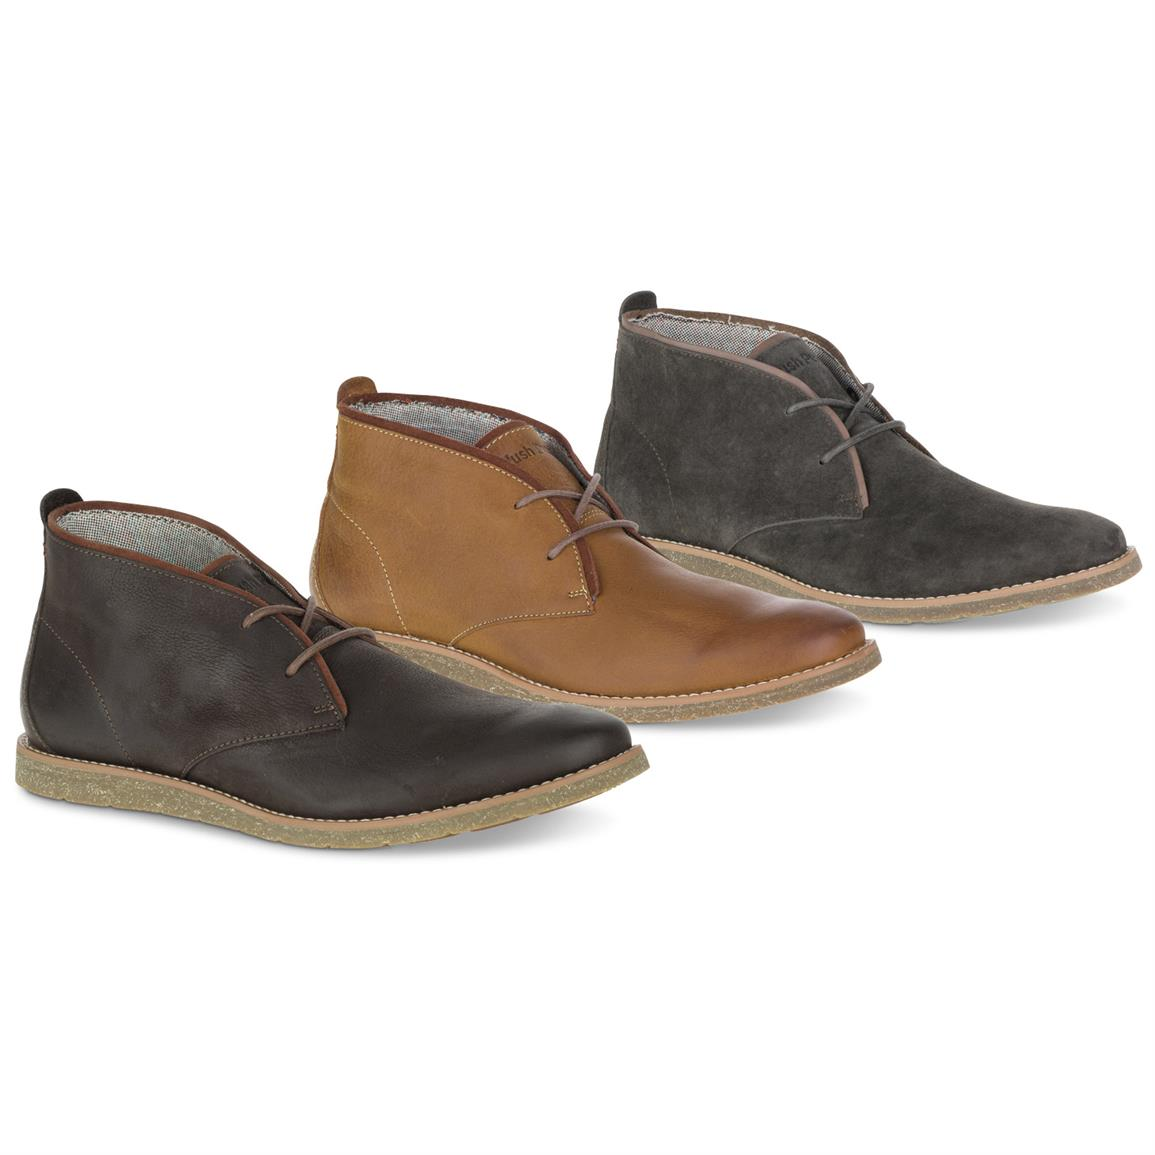 Hush Puppies Men's  Roland Jester Chukka Boots